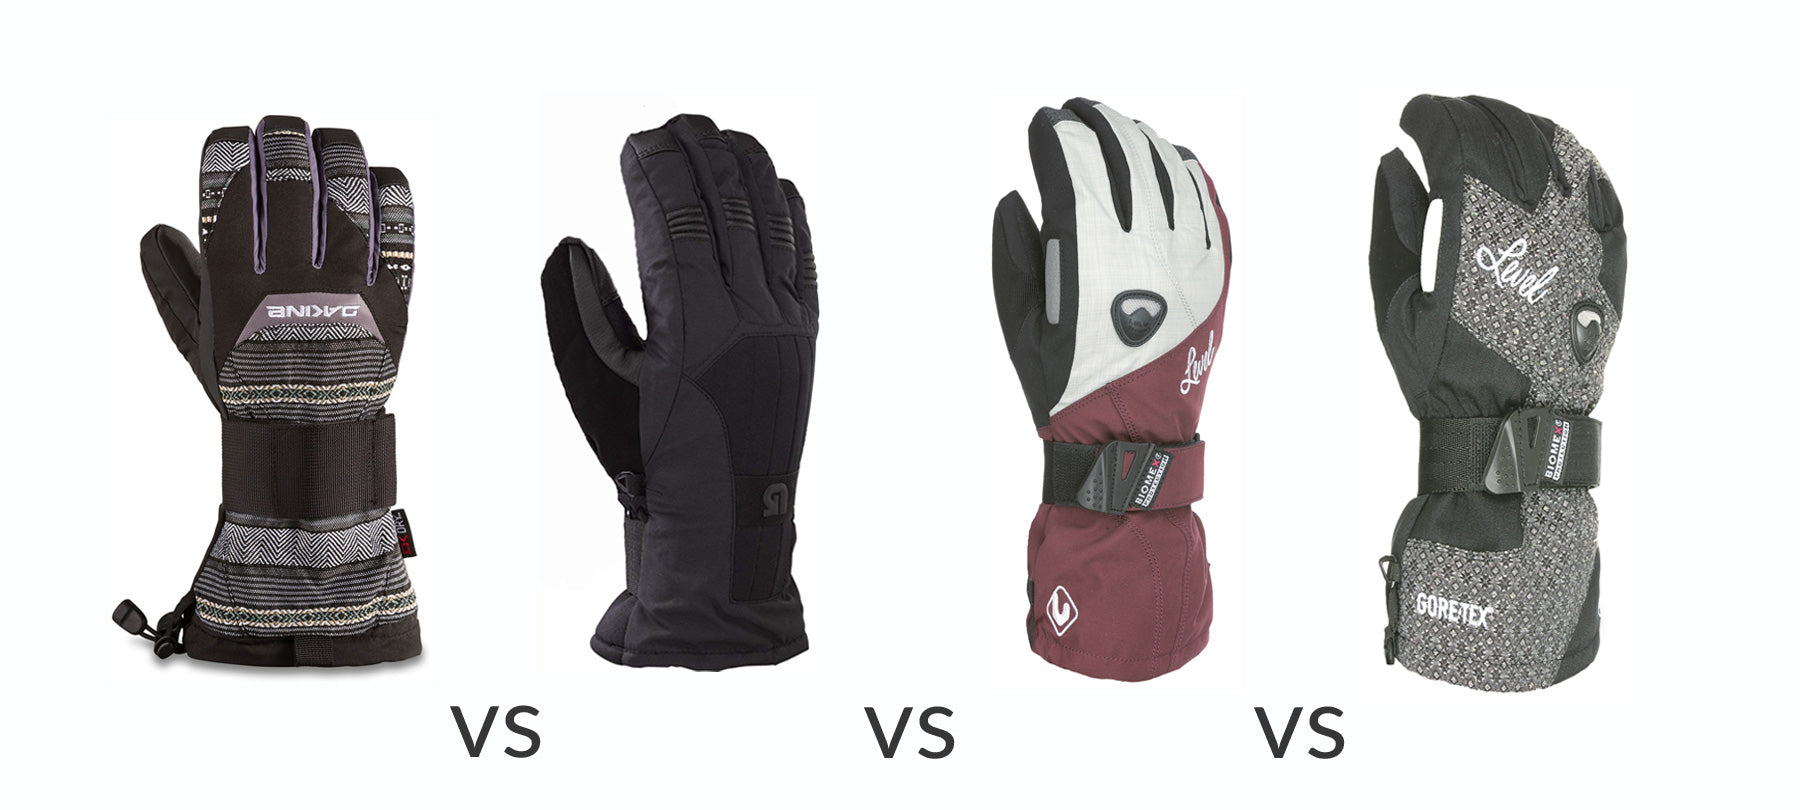 The Best Snowboard Gloves with Wrist Guards for Women